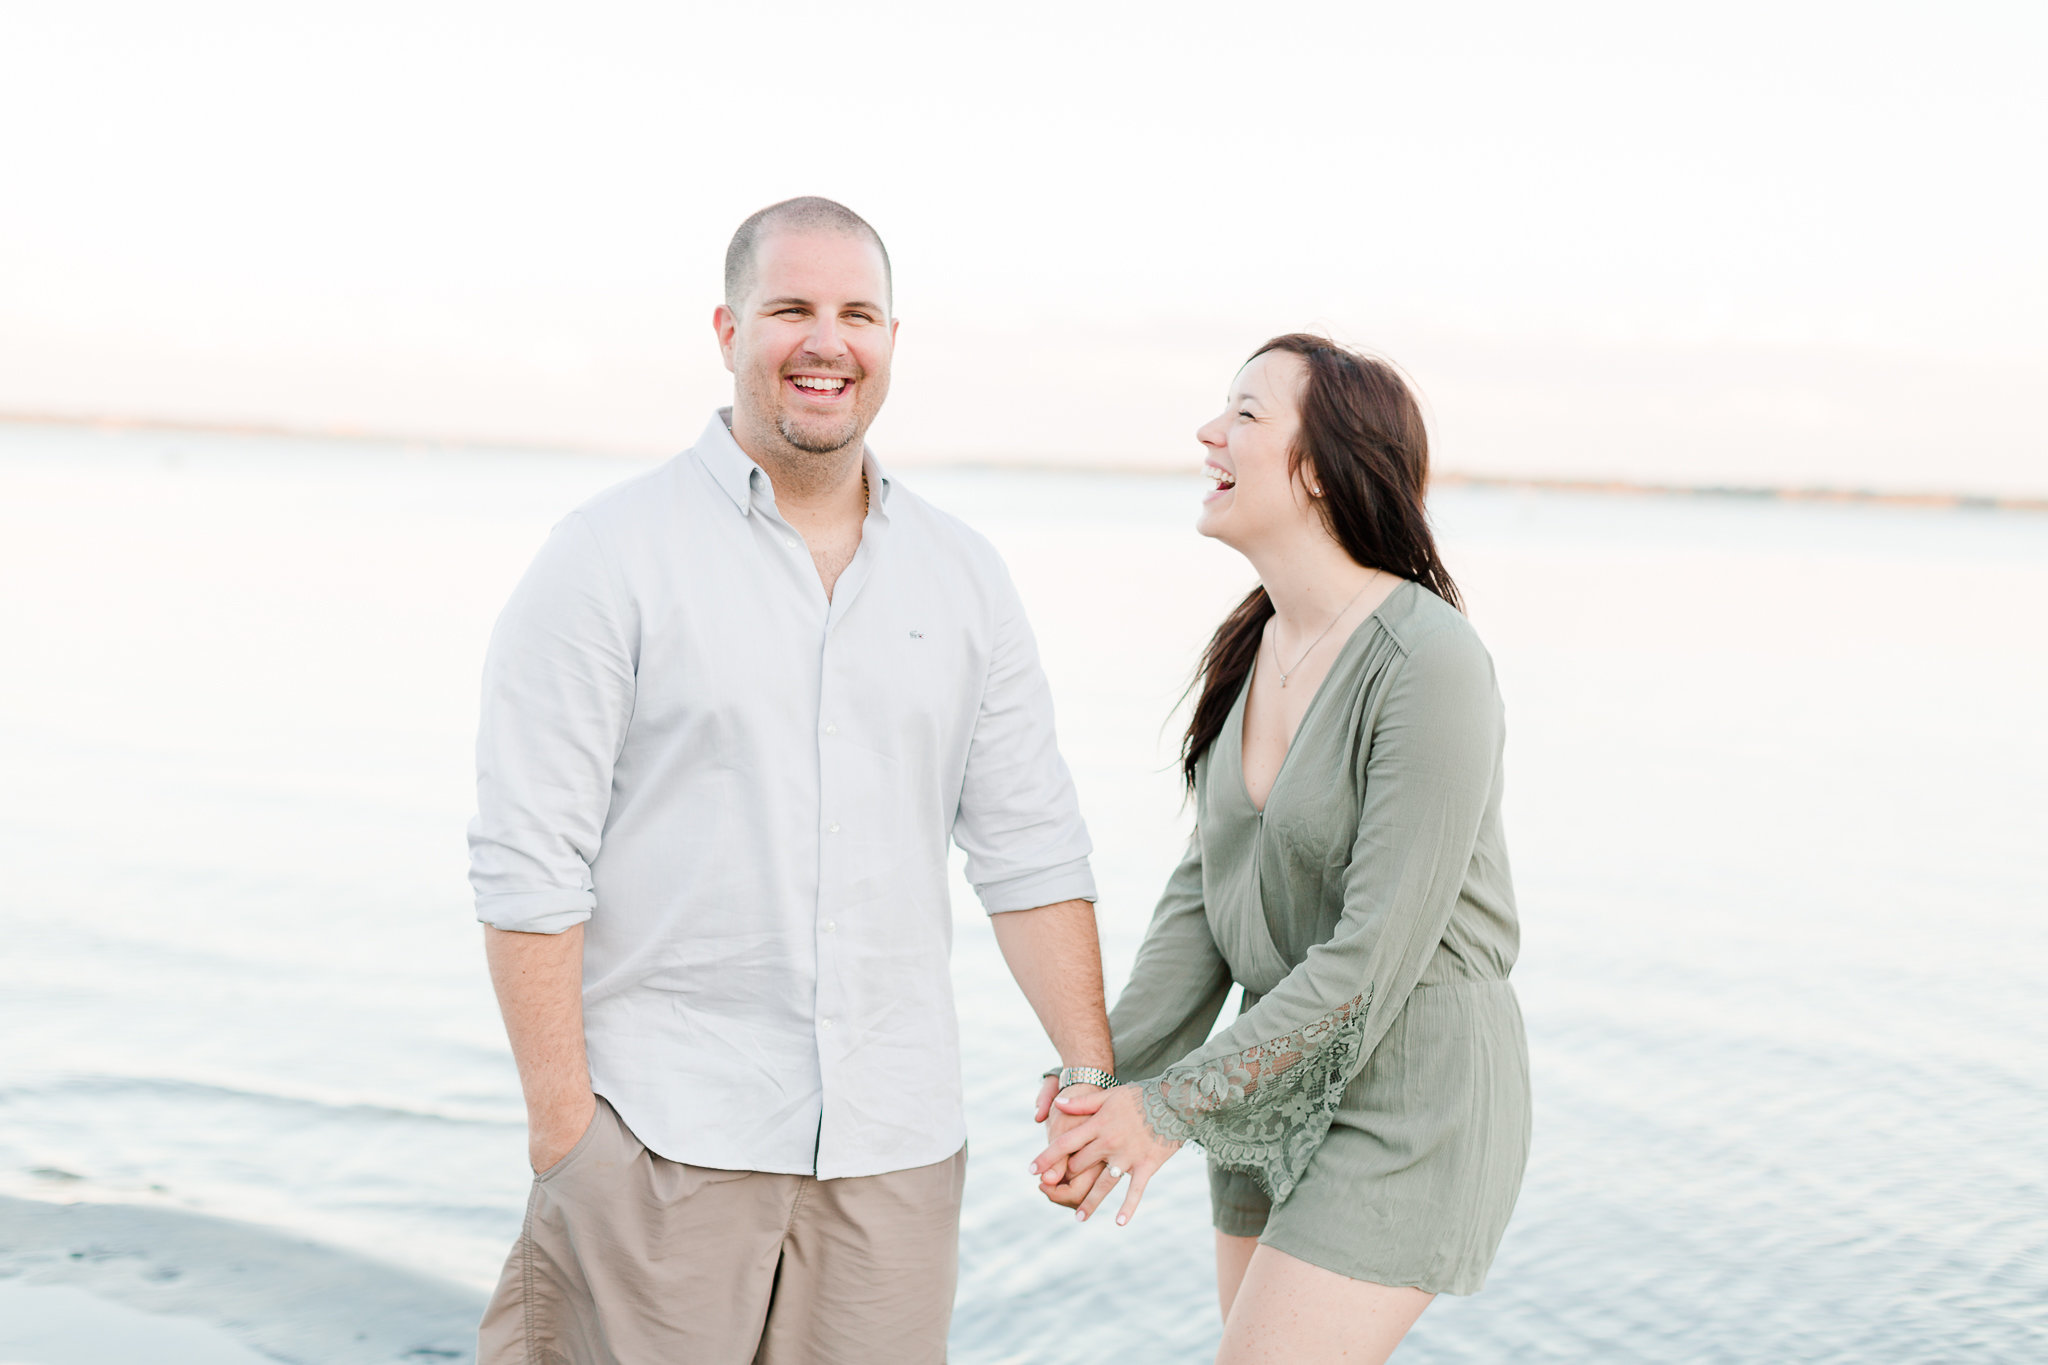 photographe-fiancailles-montreal-parc-national-oka-lisa-renault-photographie-beach-engagement-session-65